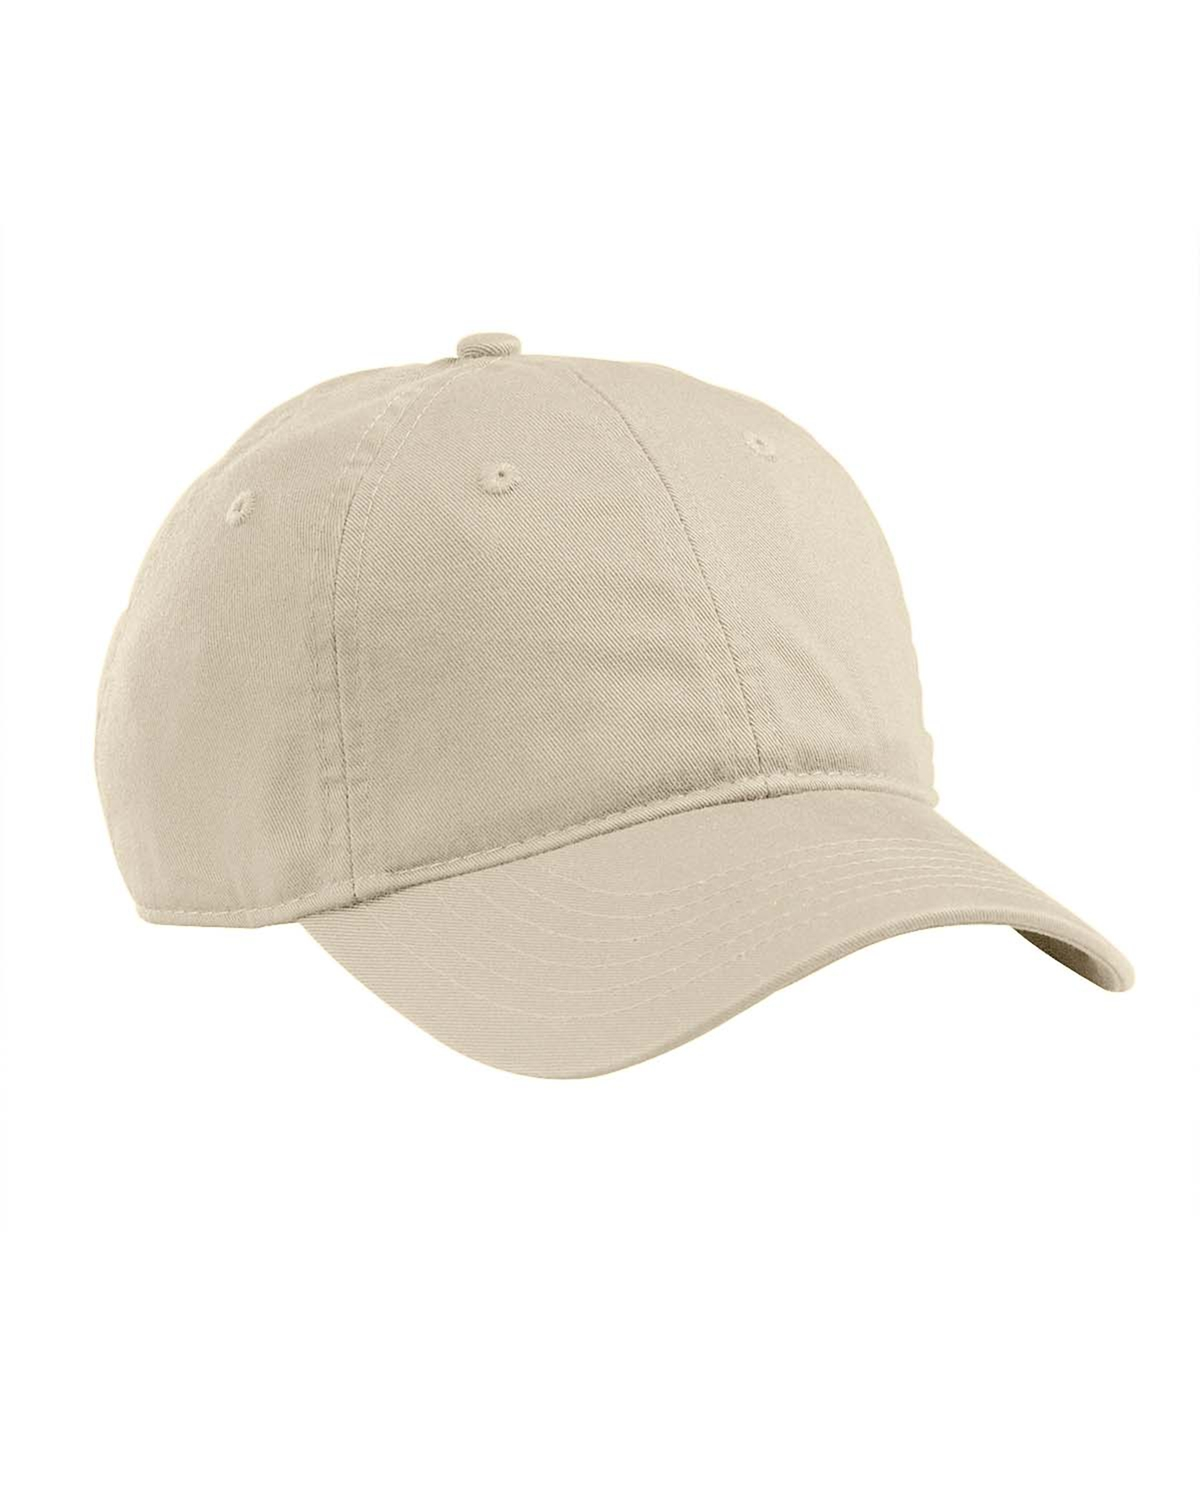 4314b784d9c Organic Cotton Baseball Cap - Hats